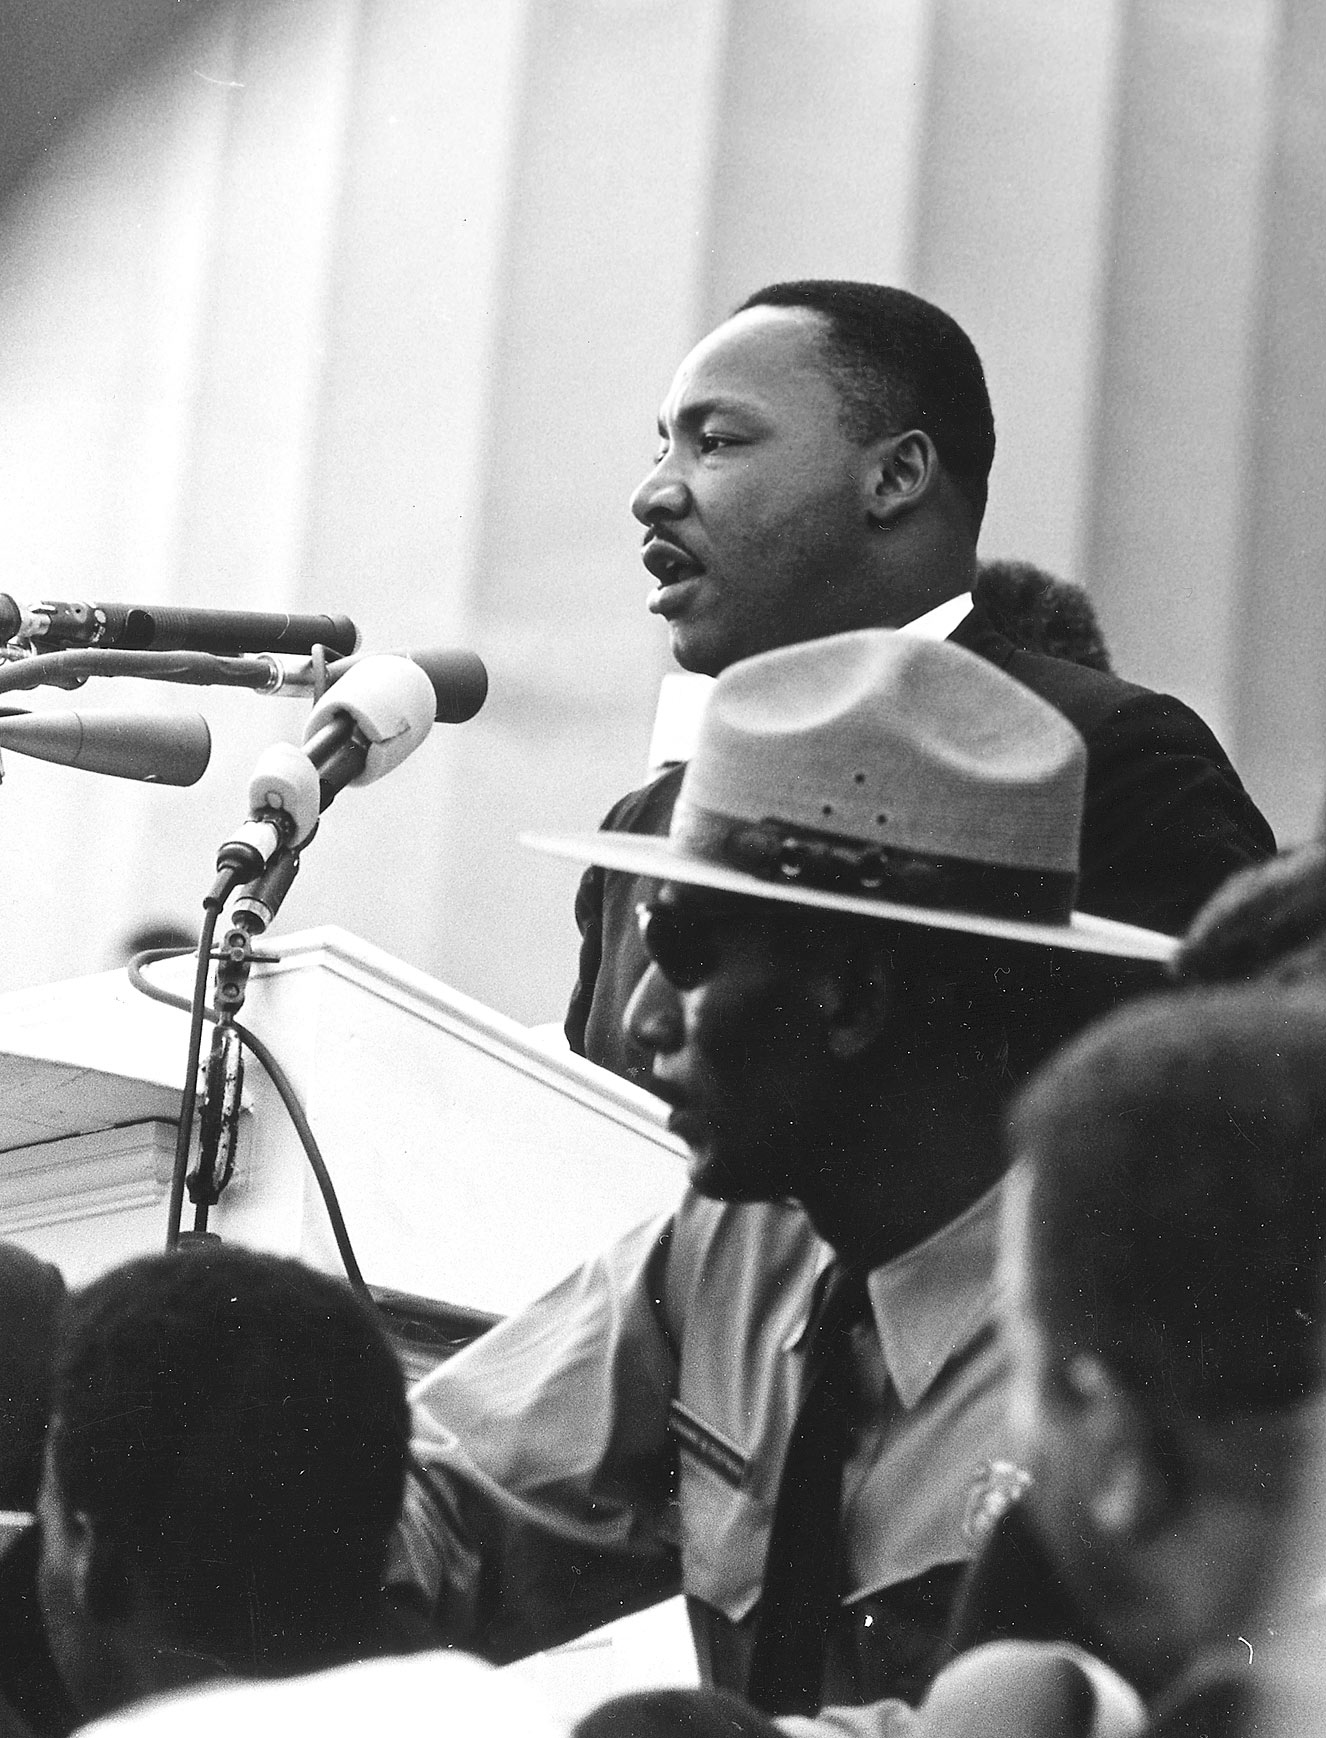 """The Rev. Martin Luther King Jr. delivers his """"I Have a Dream"""" speech during the March on Washington, August 28, 1963."""